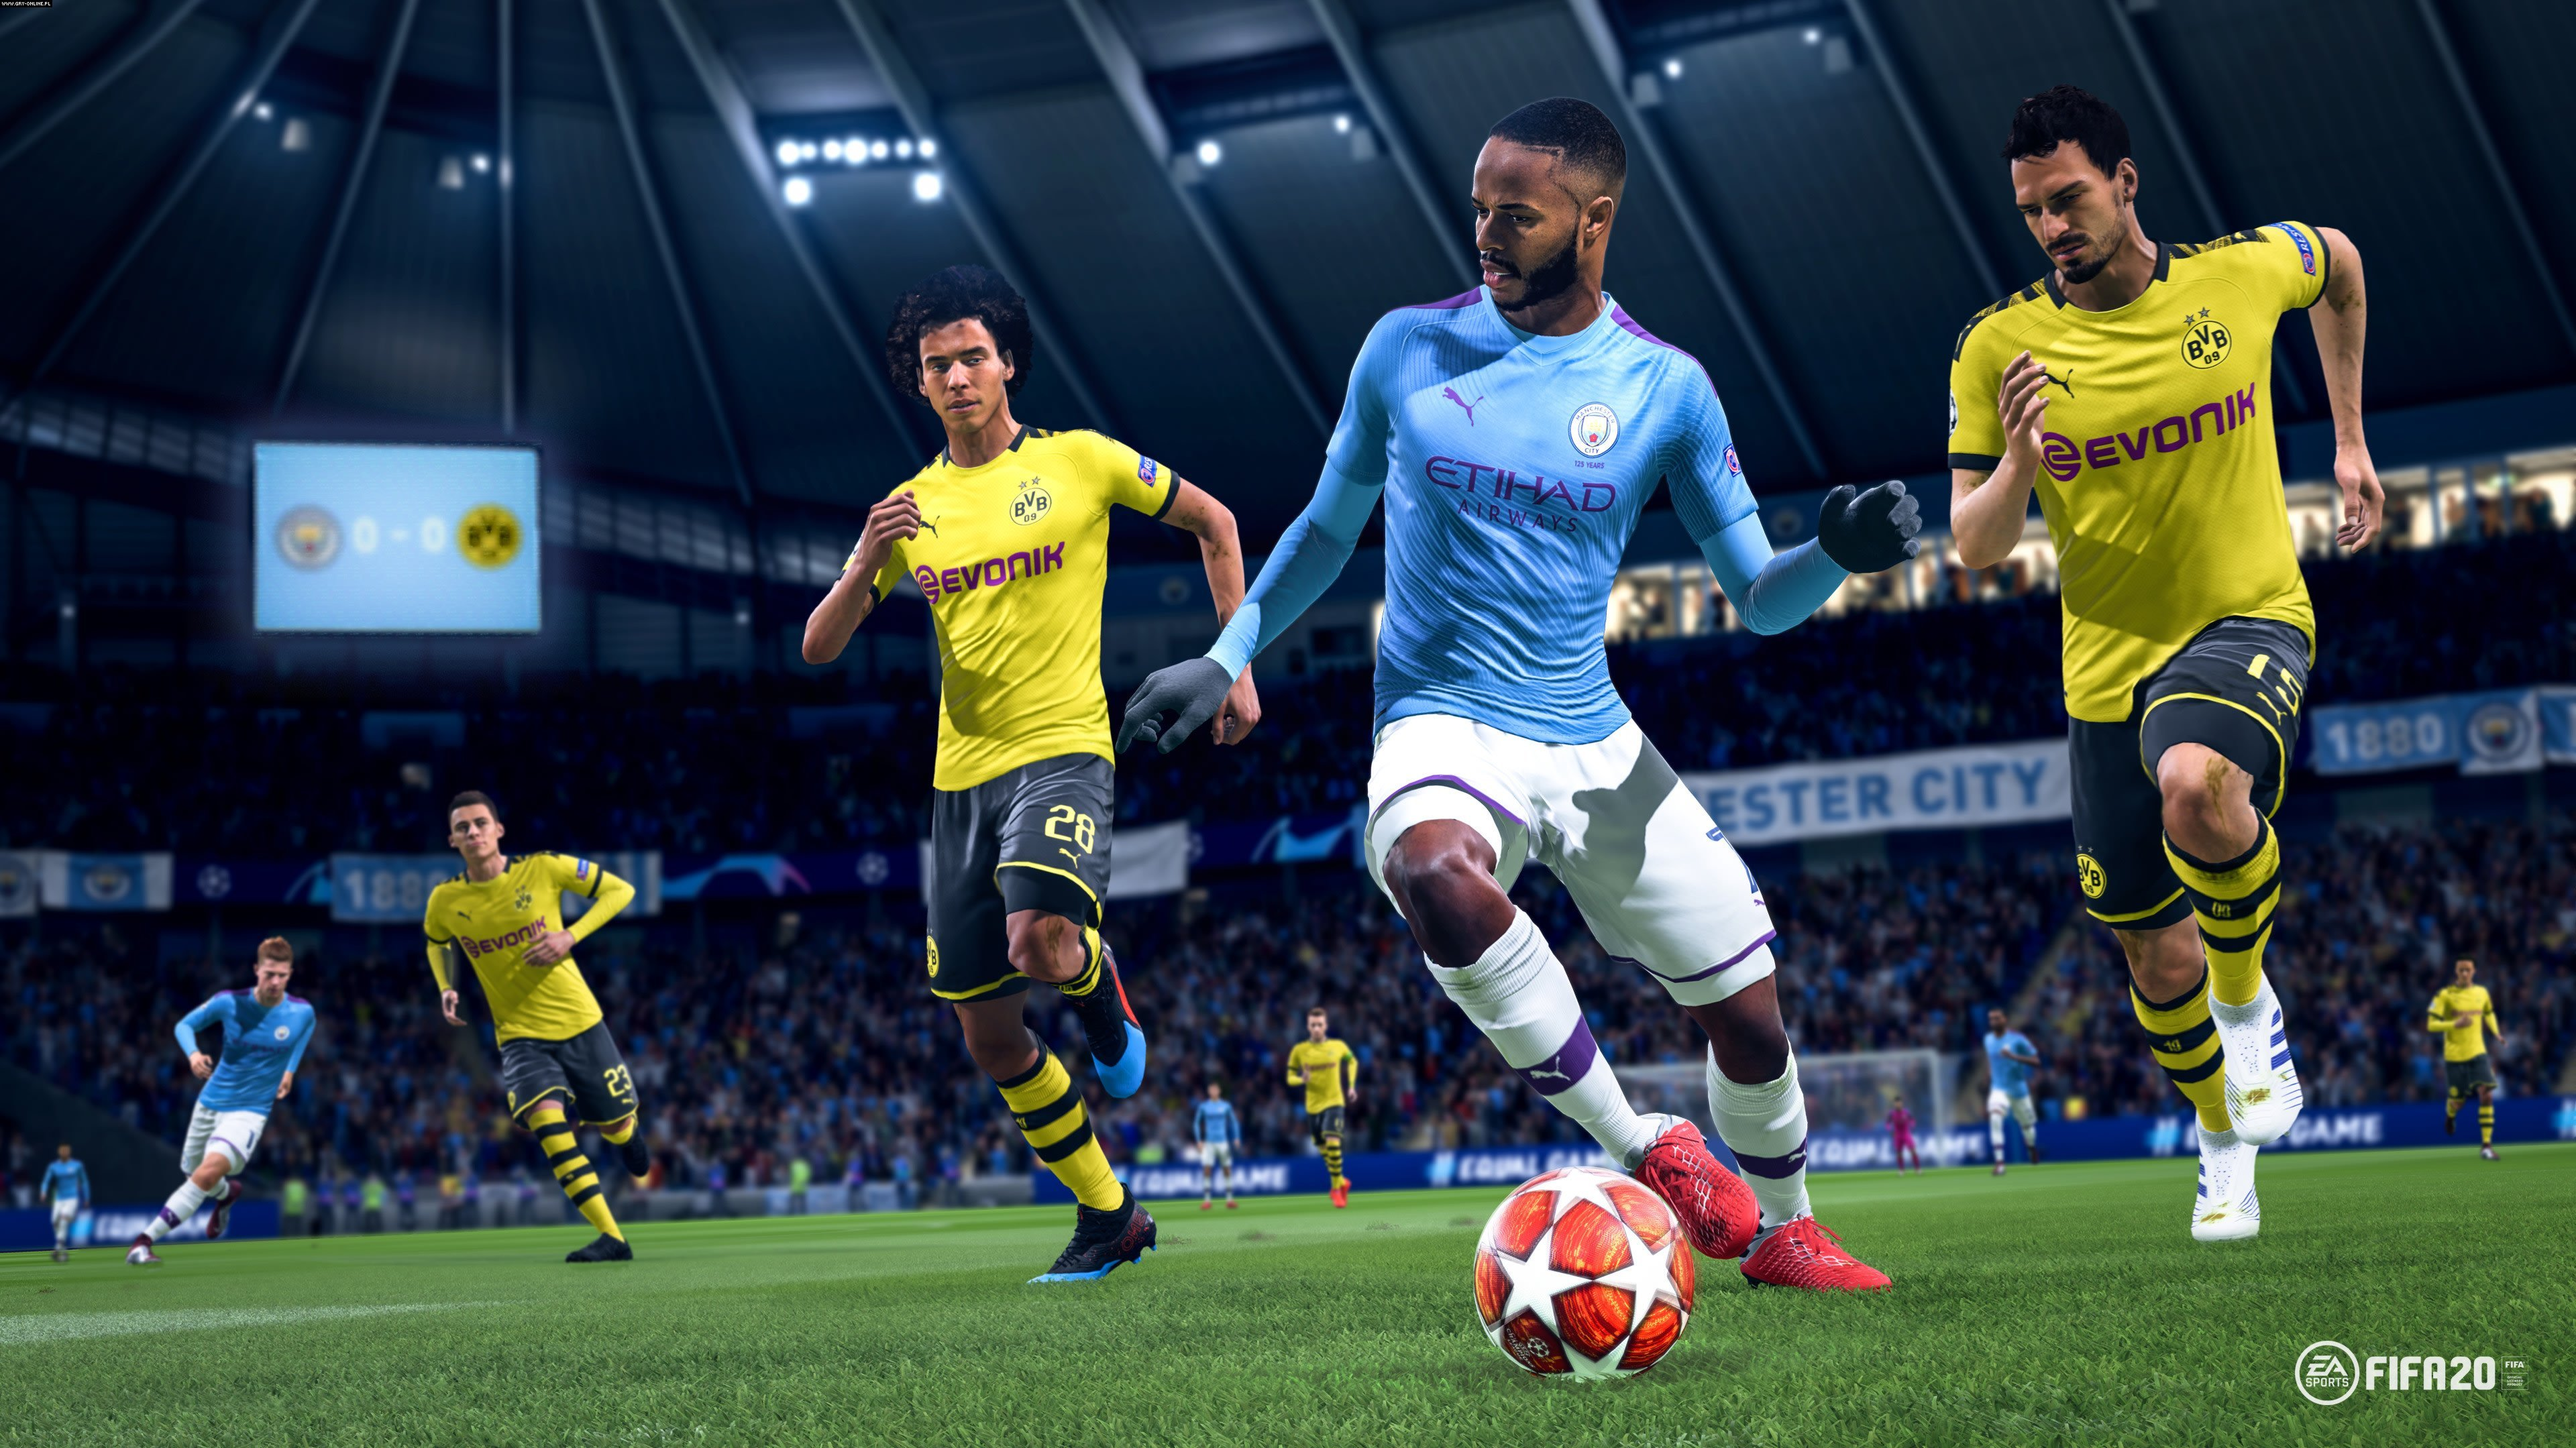 FIFA 20 PC, PS4, XONE, Switch Games Image 21/28, EA Sports, Electronic Arts Inc.